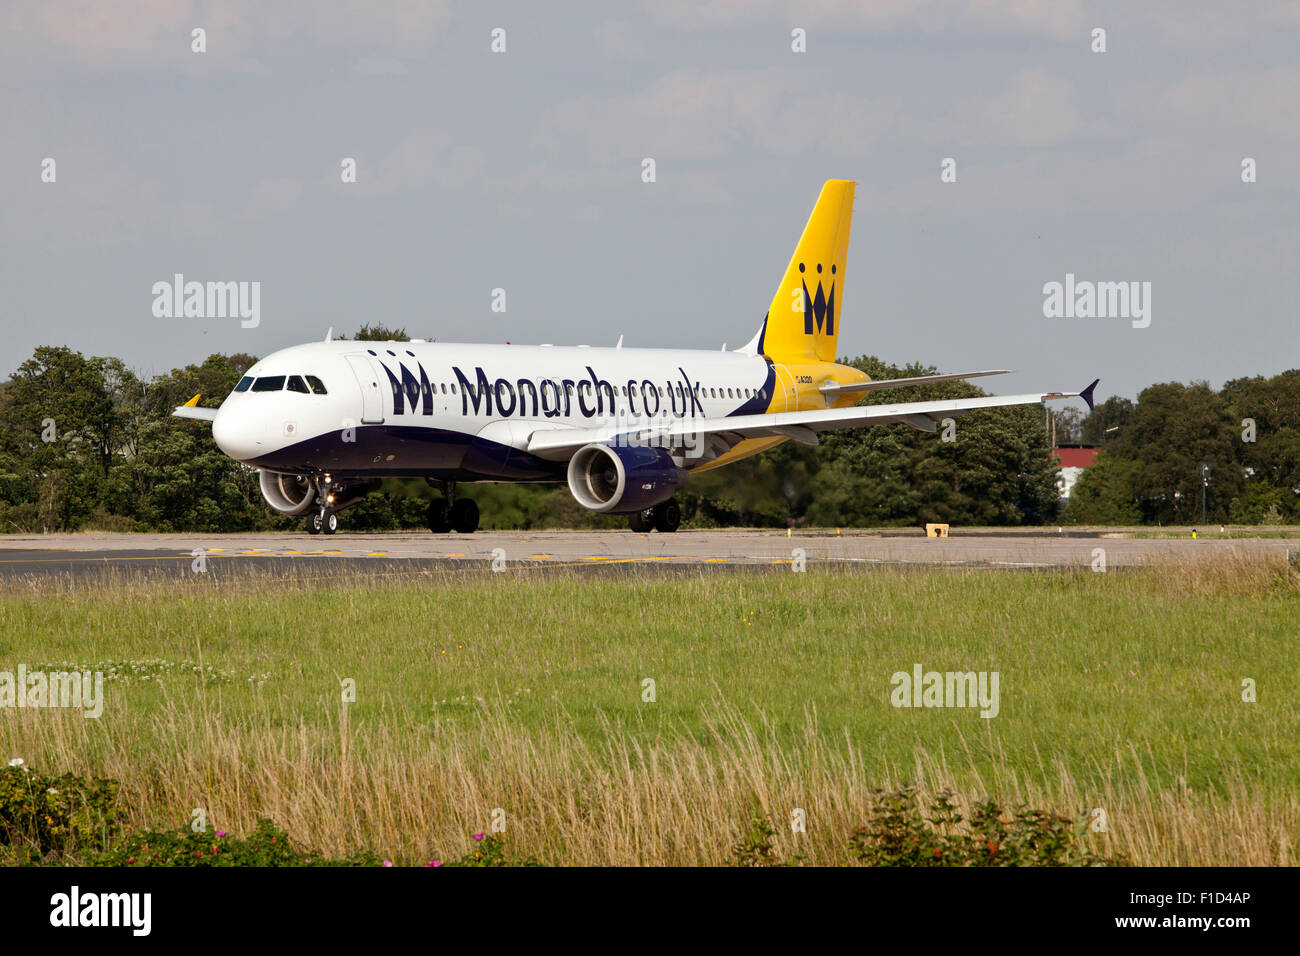 Airbus A320-200 Aeroplane owned by Monarch at Leeds Bradford Airport. - Stock Image